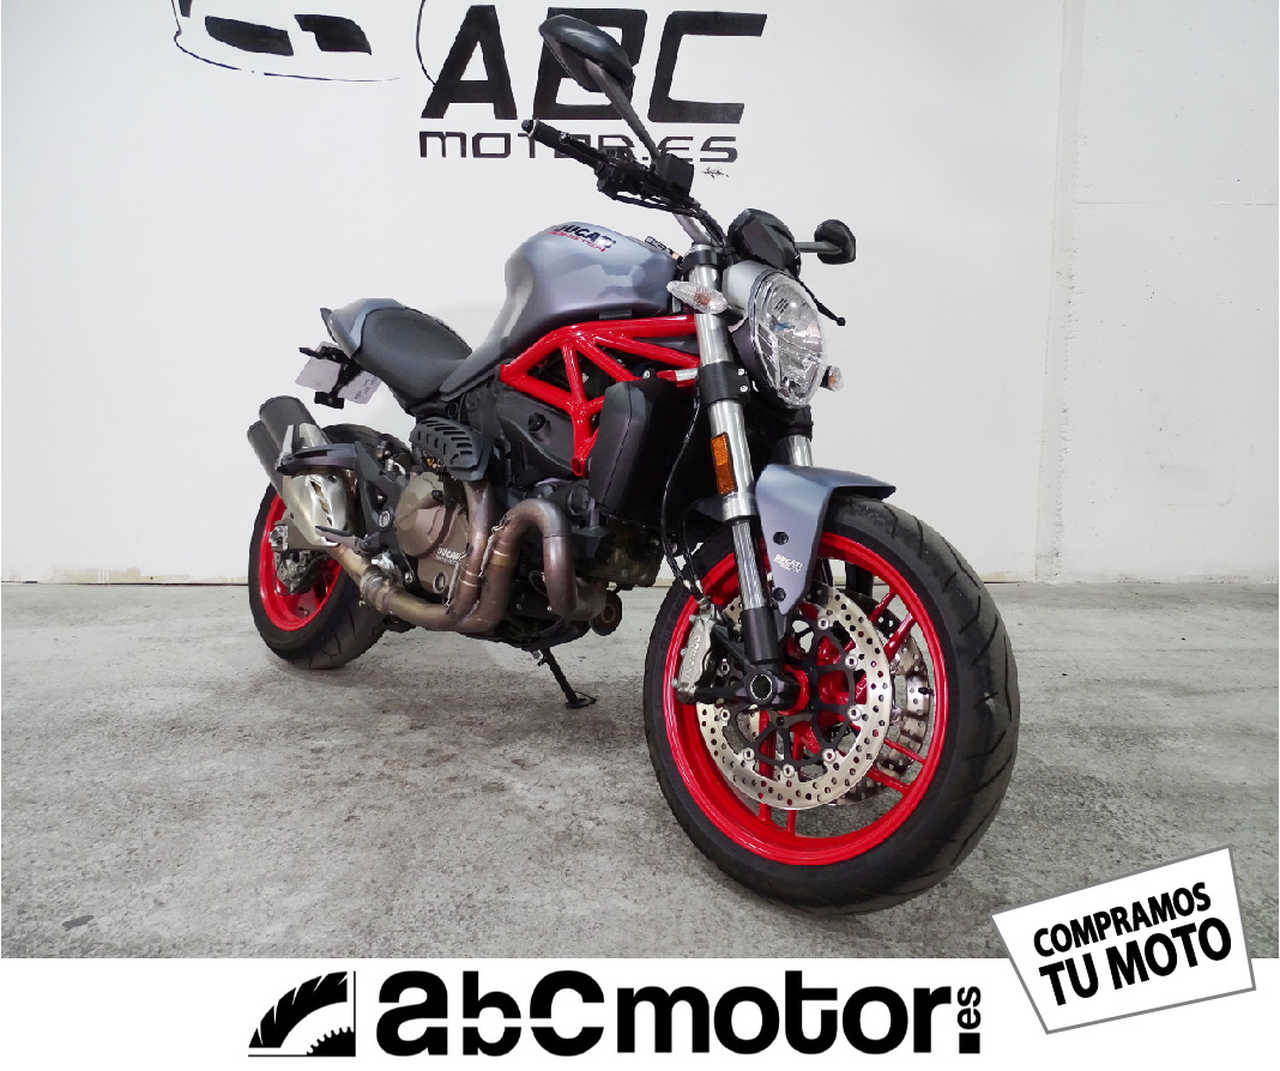 Ducati Monster 821 A2 ABS  - Foto 1